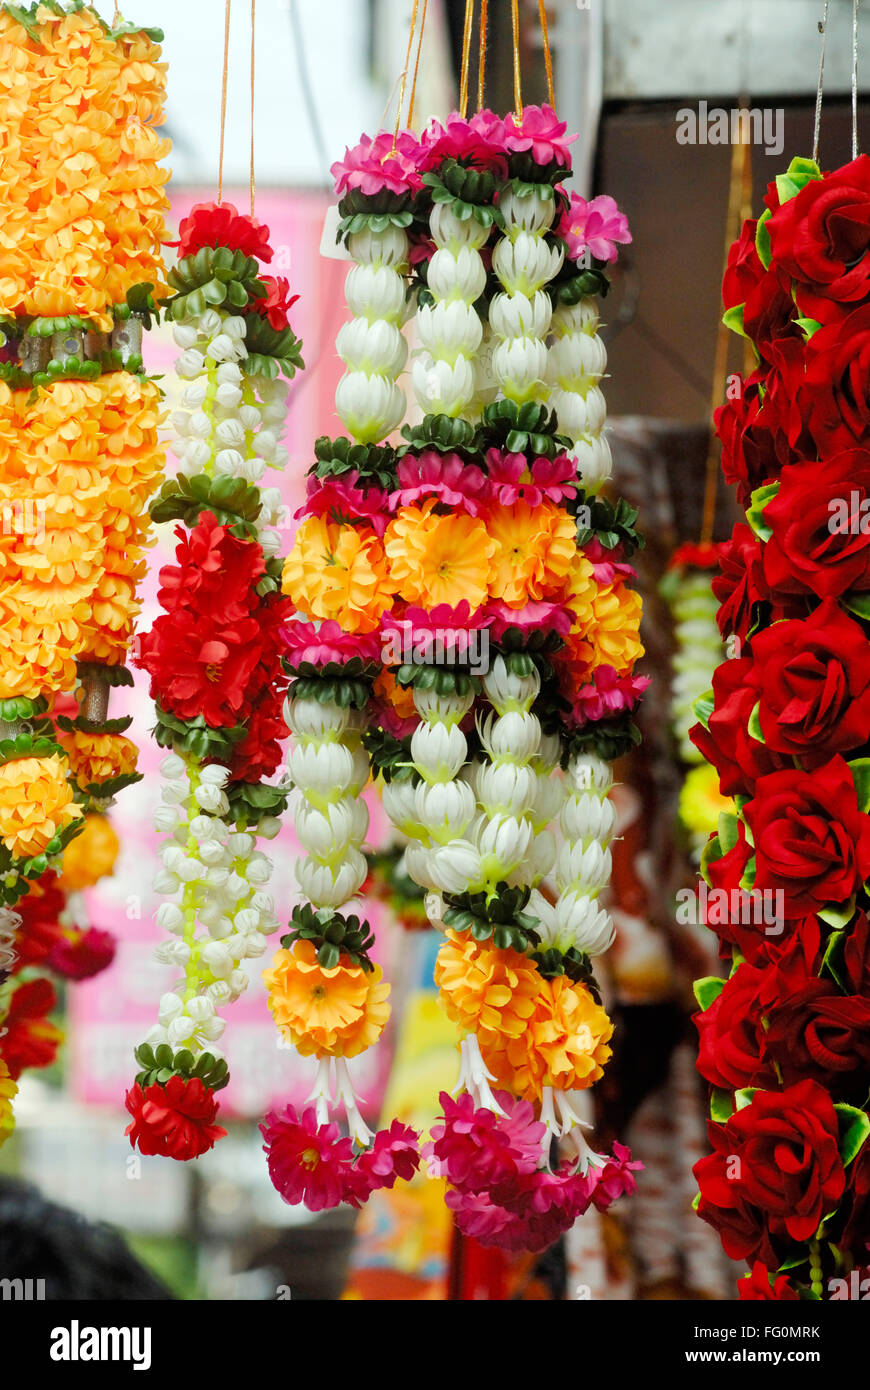 Artificial Colourful Flowers Stock Photos Artificial Colourful